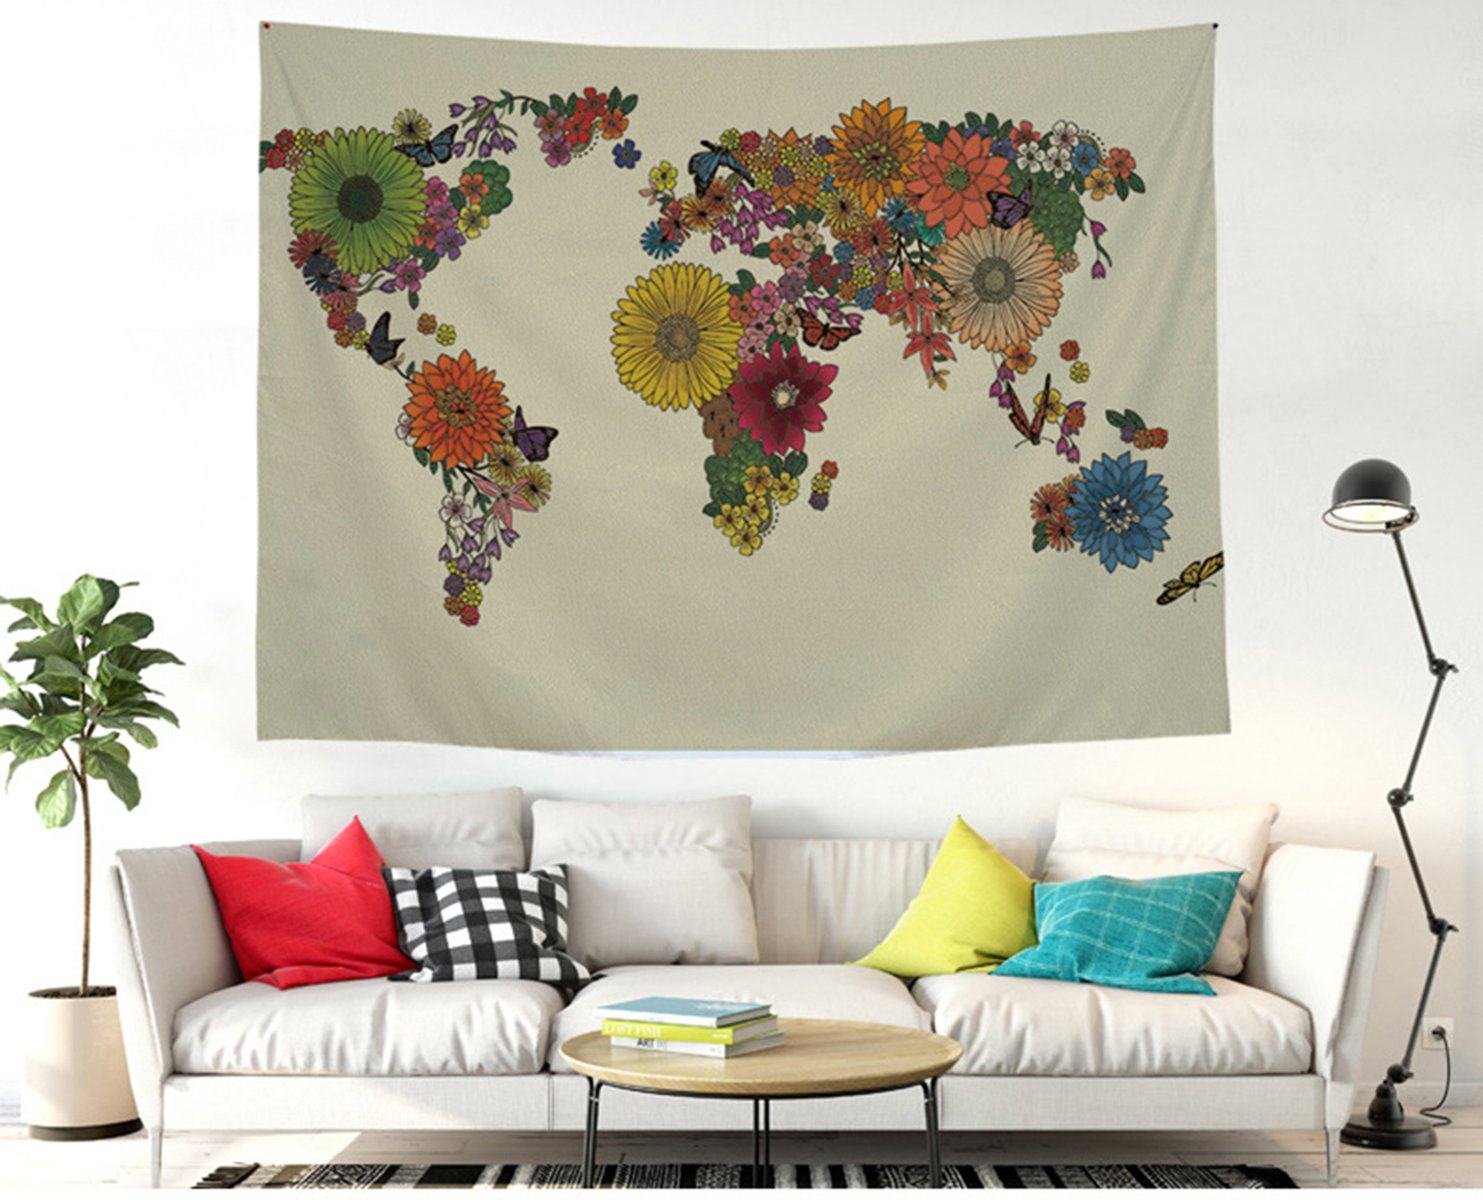 Shukqueen Tapestry, The Black World Map Wall Tapestry Bohemian Mandala Hippie Tapestry for Bedroom Living Room Dorm (51 H x 60 W, Black Map)